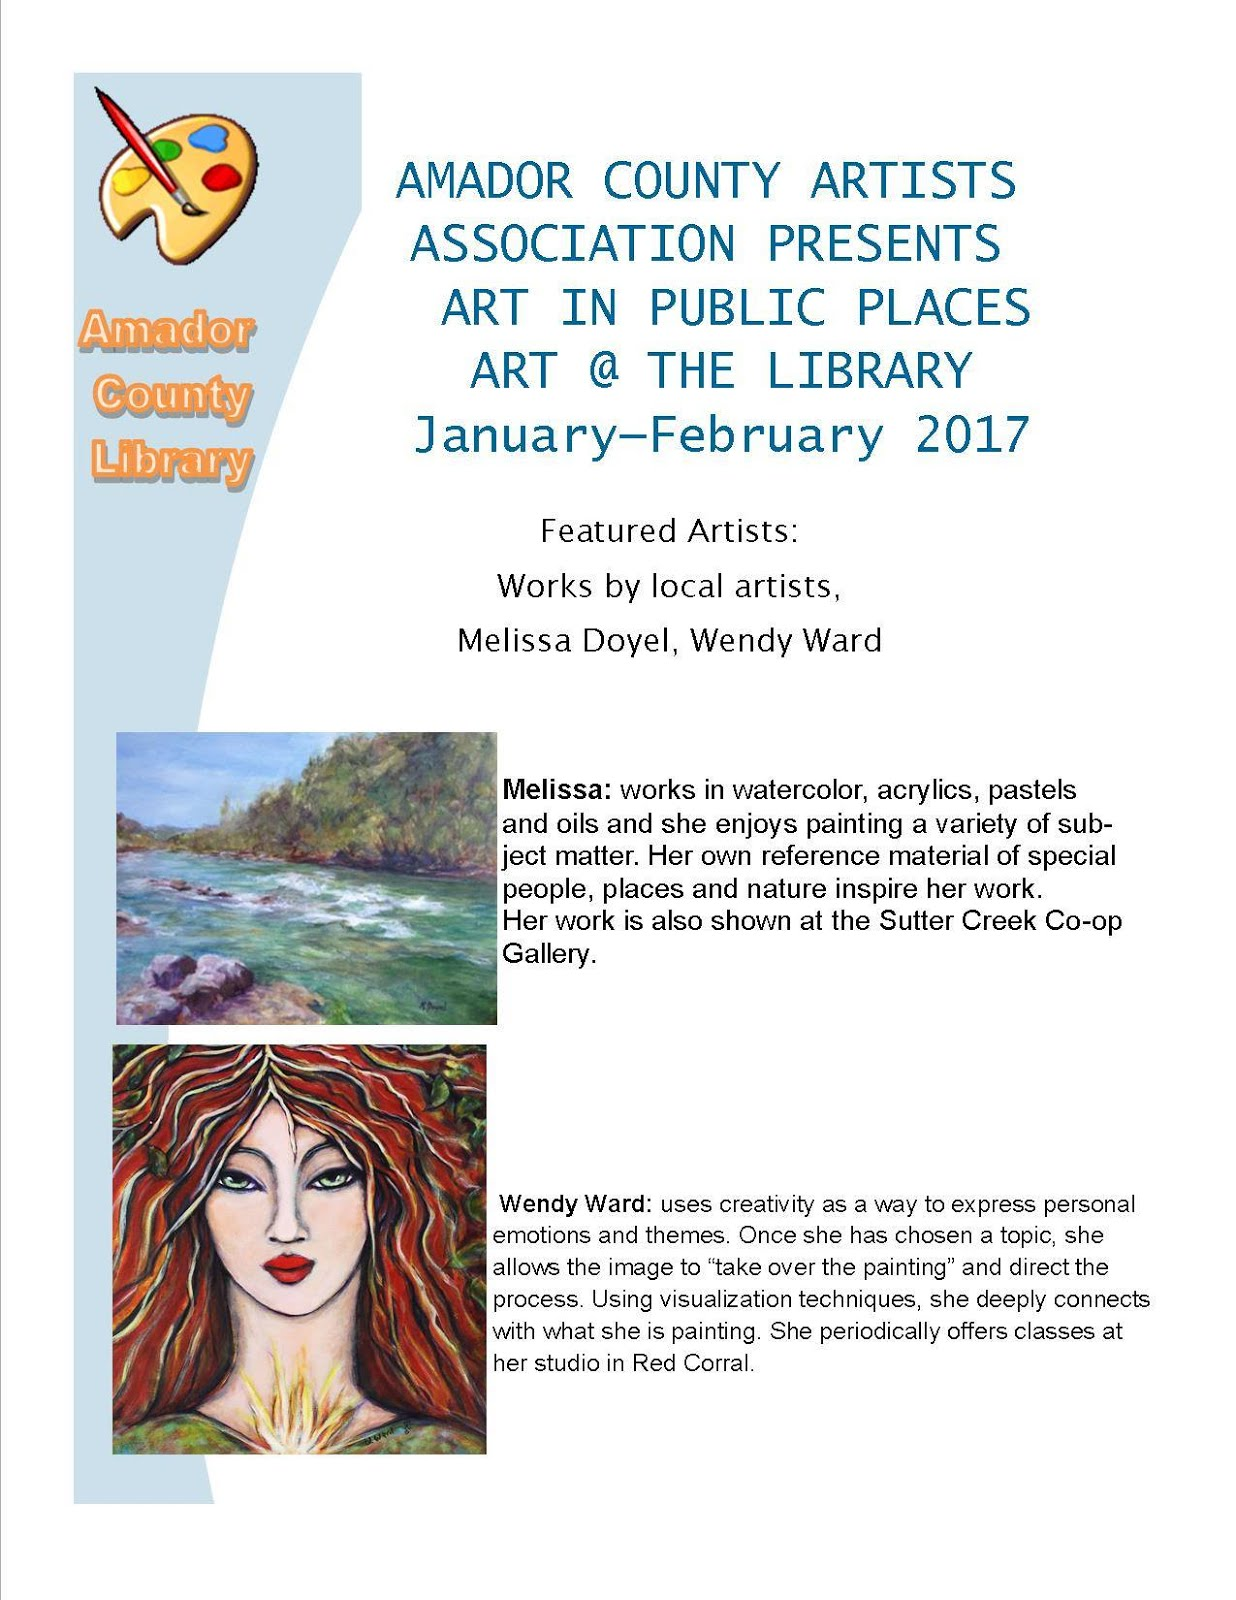 Art at the Library for Jan-Feb 2017